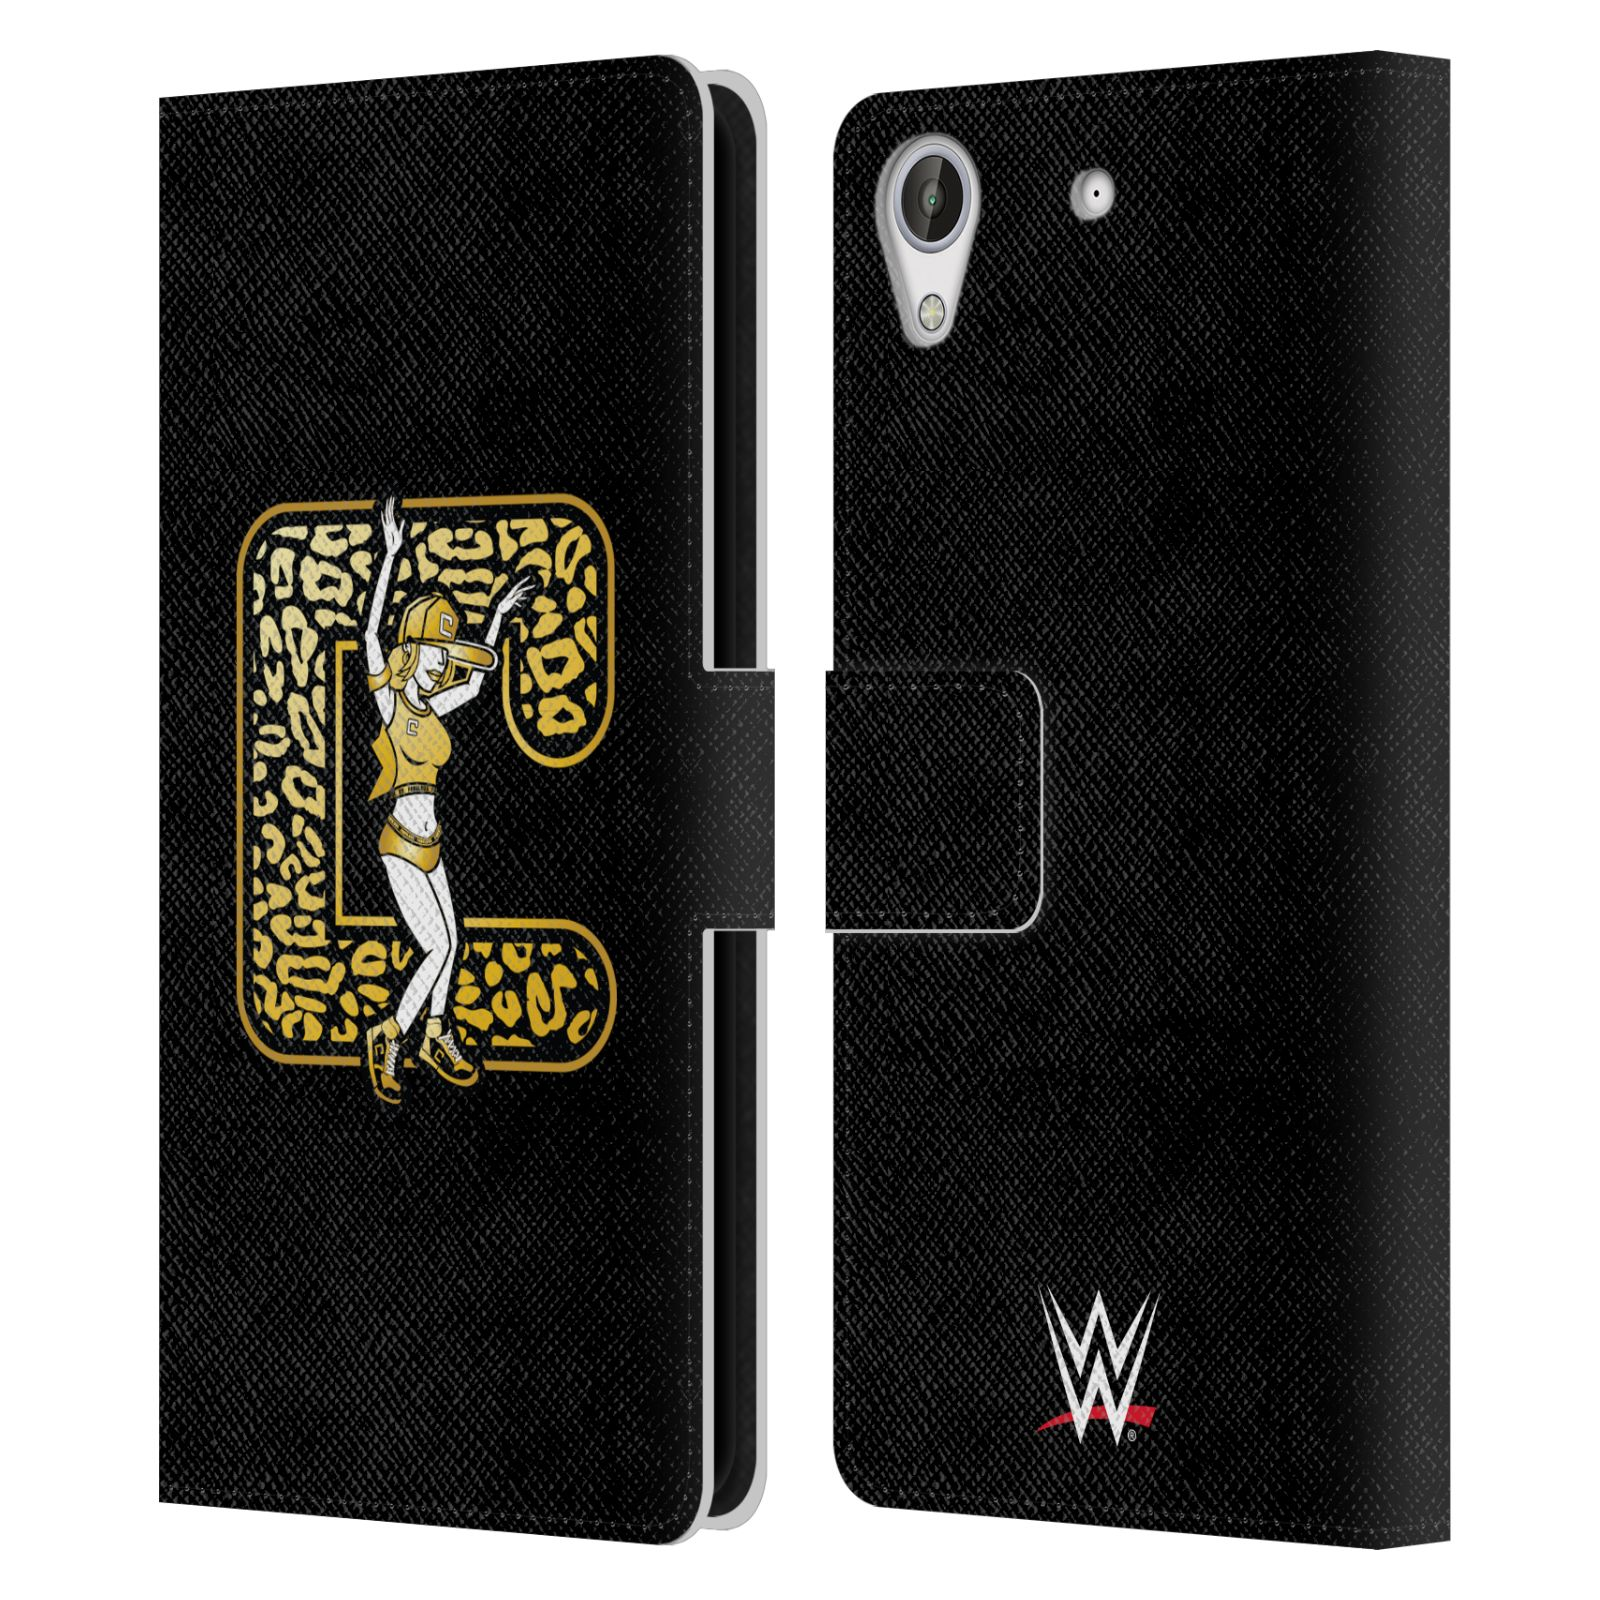 OFFICIAL-WWE-CARMELLA-LEATHER-BOOK-WALLET-CASE-FOR-HTC-PHONES-2